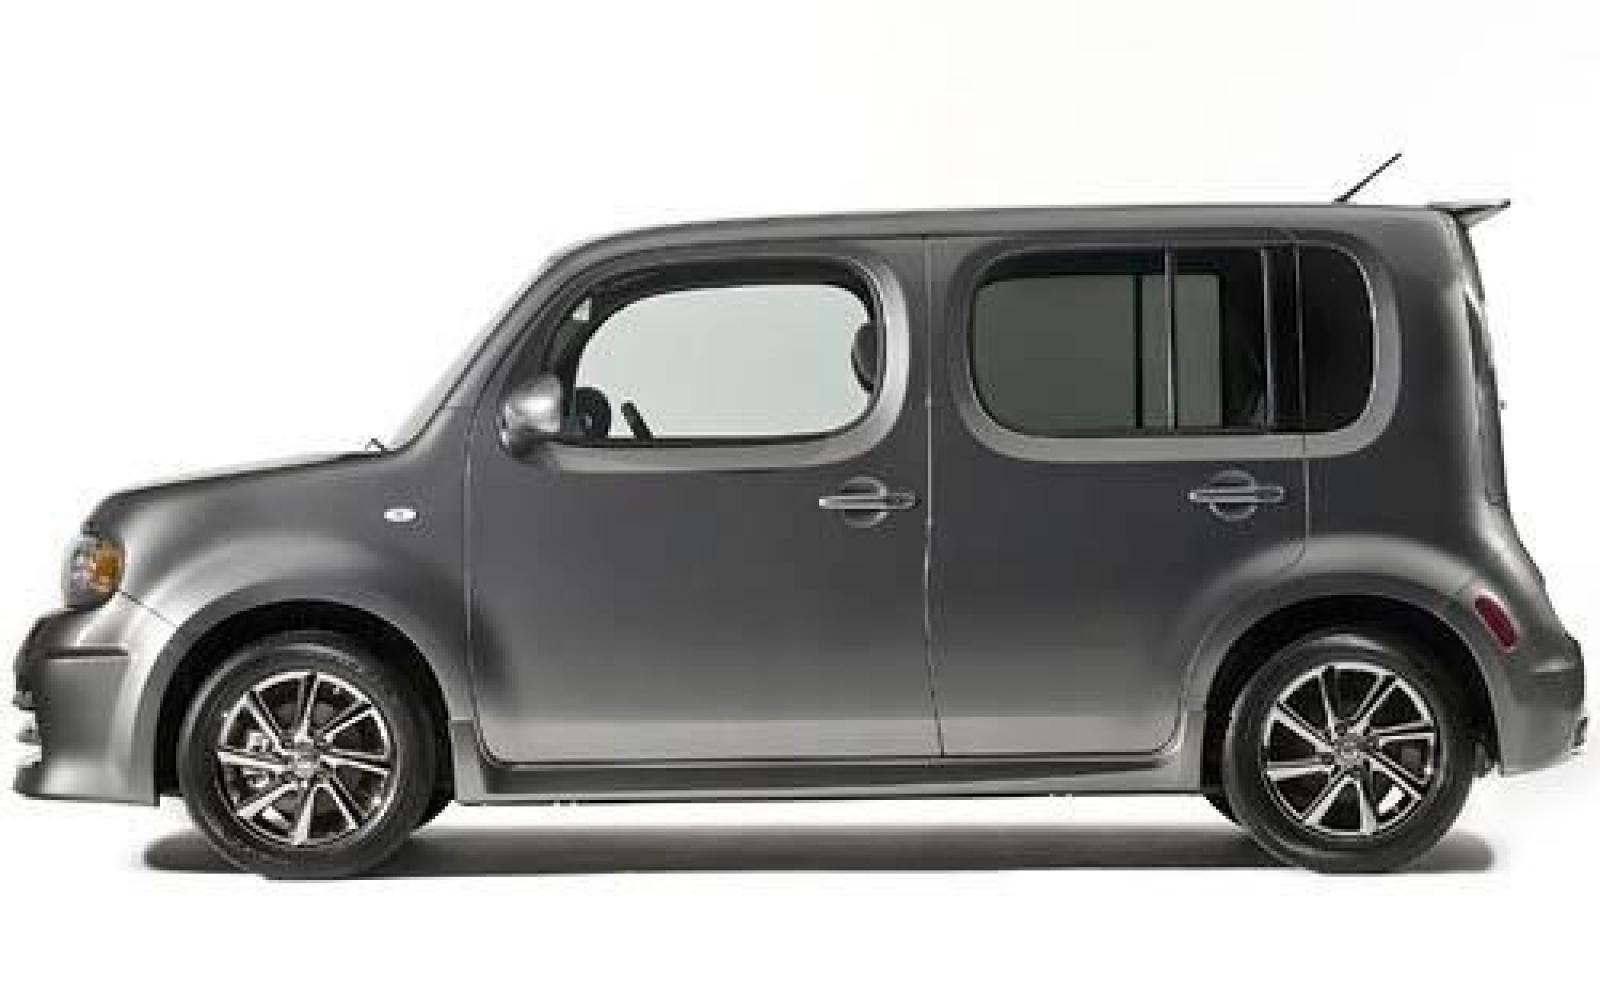 2010 nissan cube information and photos zombiedrive 800 1024 1280 1600 origin 2010 nissan cube vanachro Choice Image